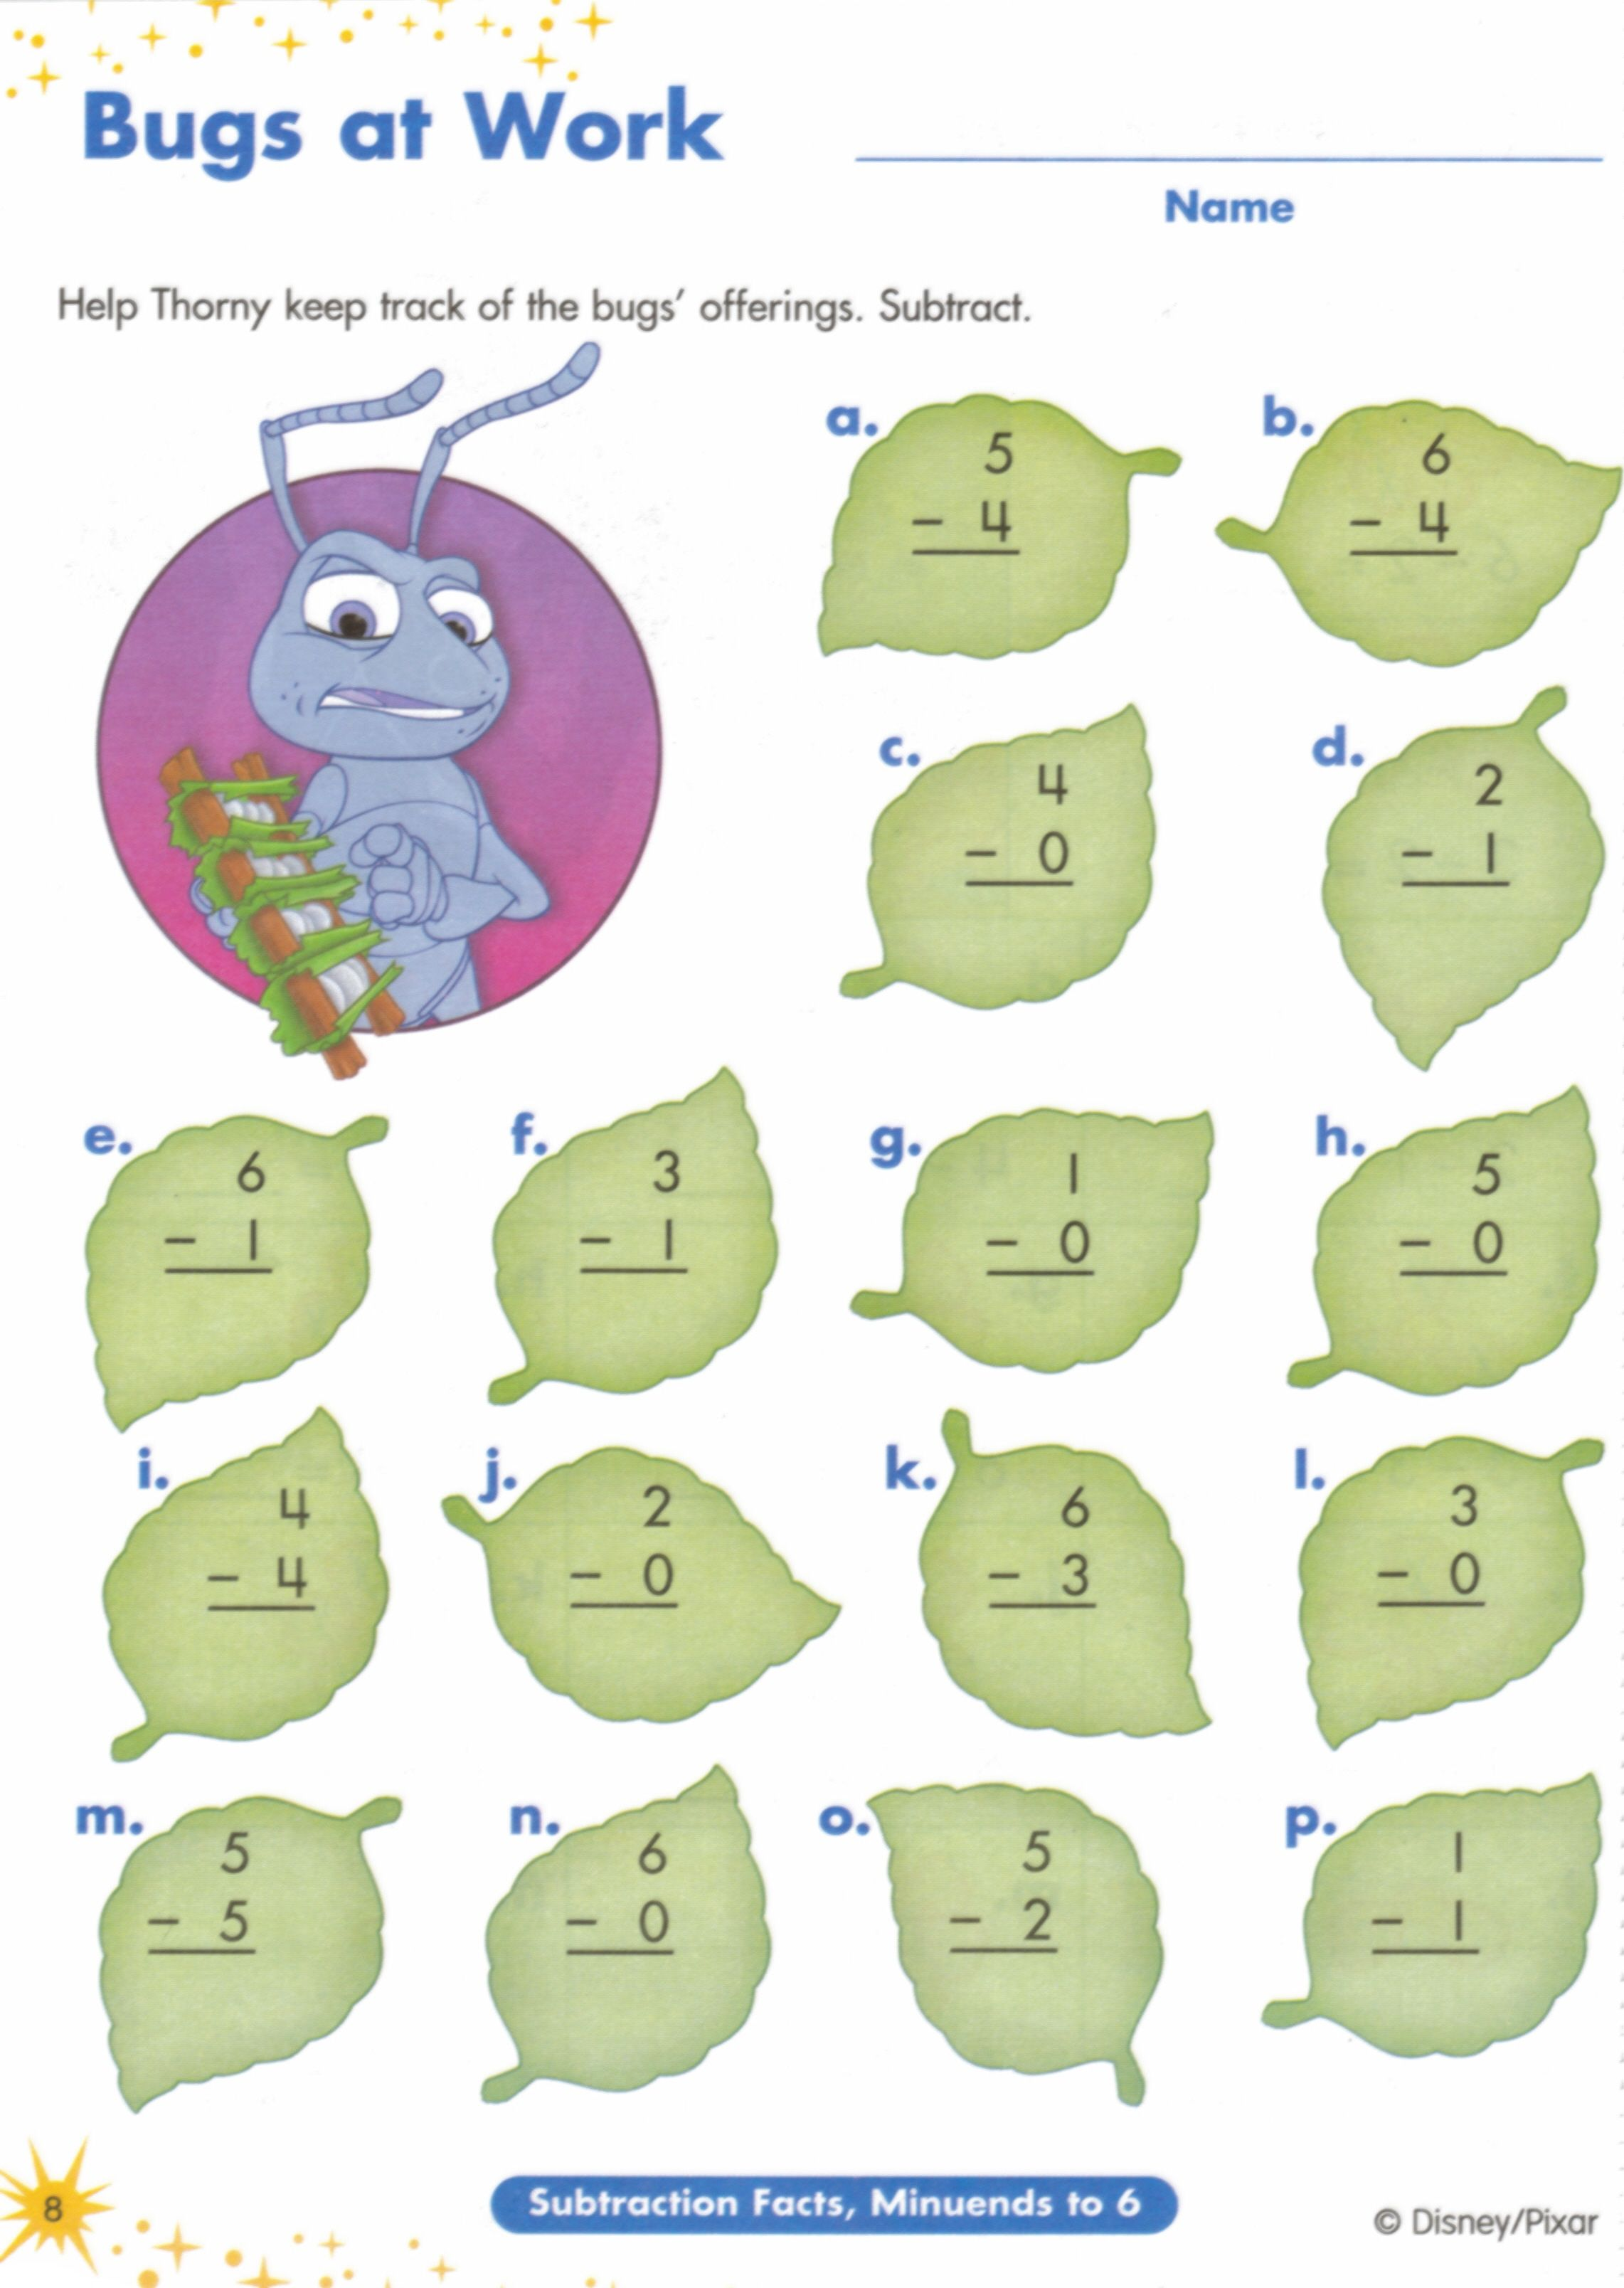 Weirdmailus  Outstanding  Images About Worksheets On Pinterest  Fun Facts For Kids  With Exquisite  Images About Worksheets On Pinterest  Fun Facts For Kids Earth Day Worksheets And Jungles With Appealing Counting By S Worksheet Also Fourth Grade English Worksheets In Addition Words Their Way Worksheets And Cloud Worksheet As Well As Connotation Vs Denotation Worksheet Additionally Evaluate Algebraic Expressions Worksheet From Pinterestcom With Weirdmailus  Exquisite  Images About Worksheets On Pinterest  Fun Facts For Kids  With Appealing  Images About Worksheets On Pinterest  Fun Facts For Kids Earth Day Worksheets And Jungles And Outstanding Counting By S Worksheet Also Fourth Grade English Worksheets In Addition Words Their Way Worksheets From Pinterestcom